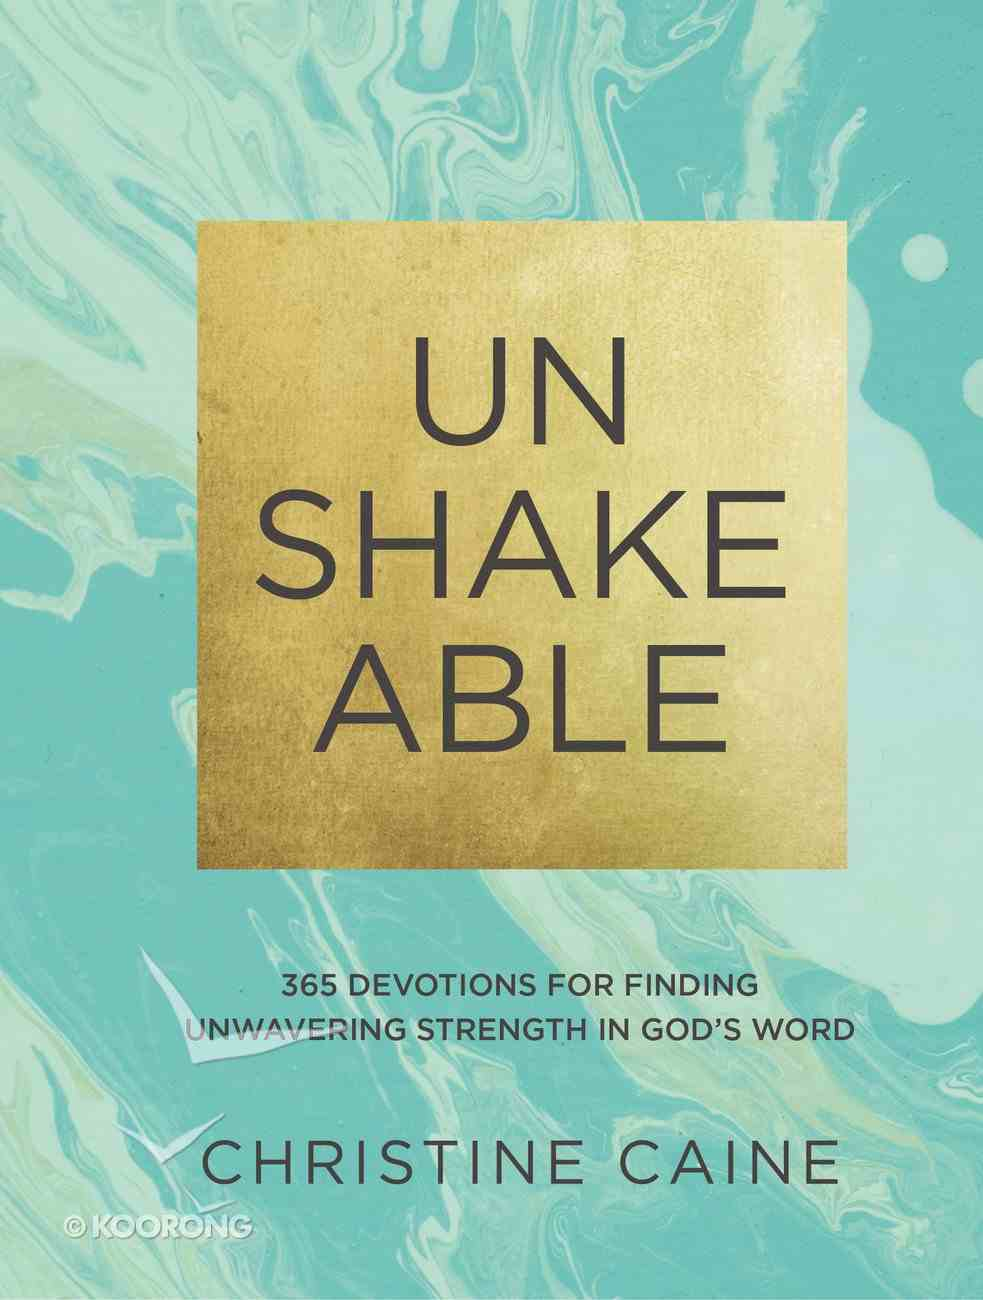 Unshakeable: 365 Devotions For Finding Unwavering Strength in God's Word eBook